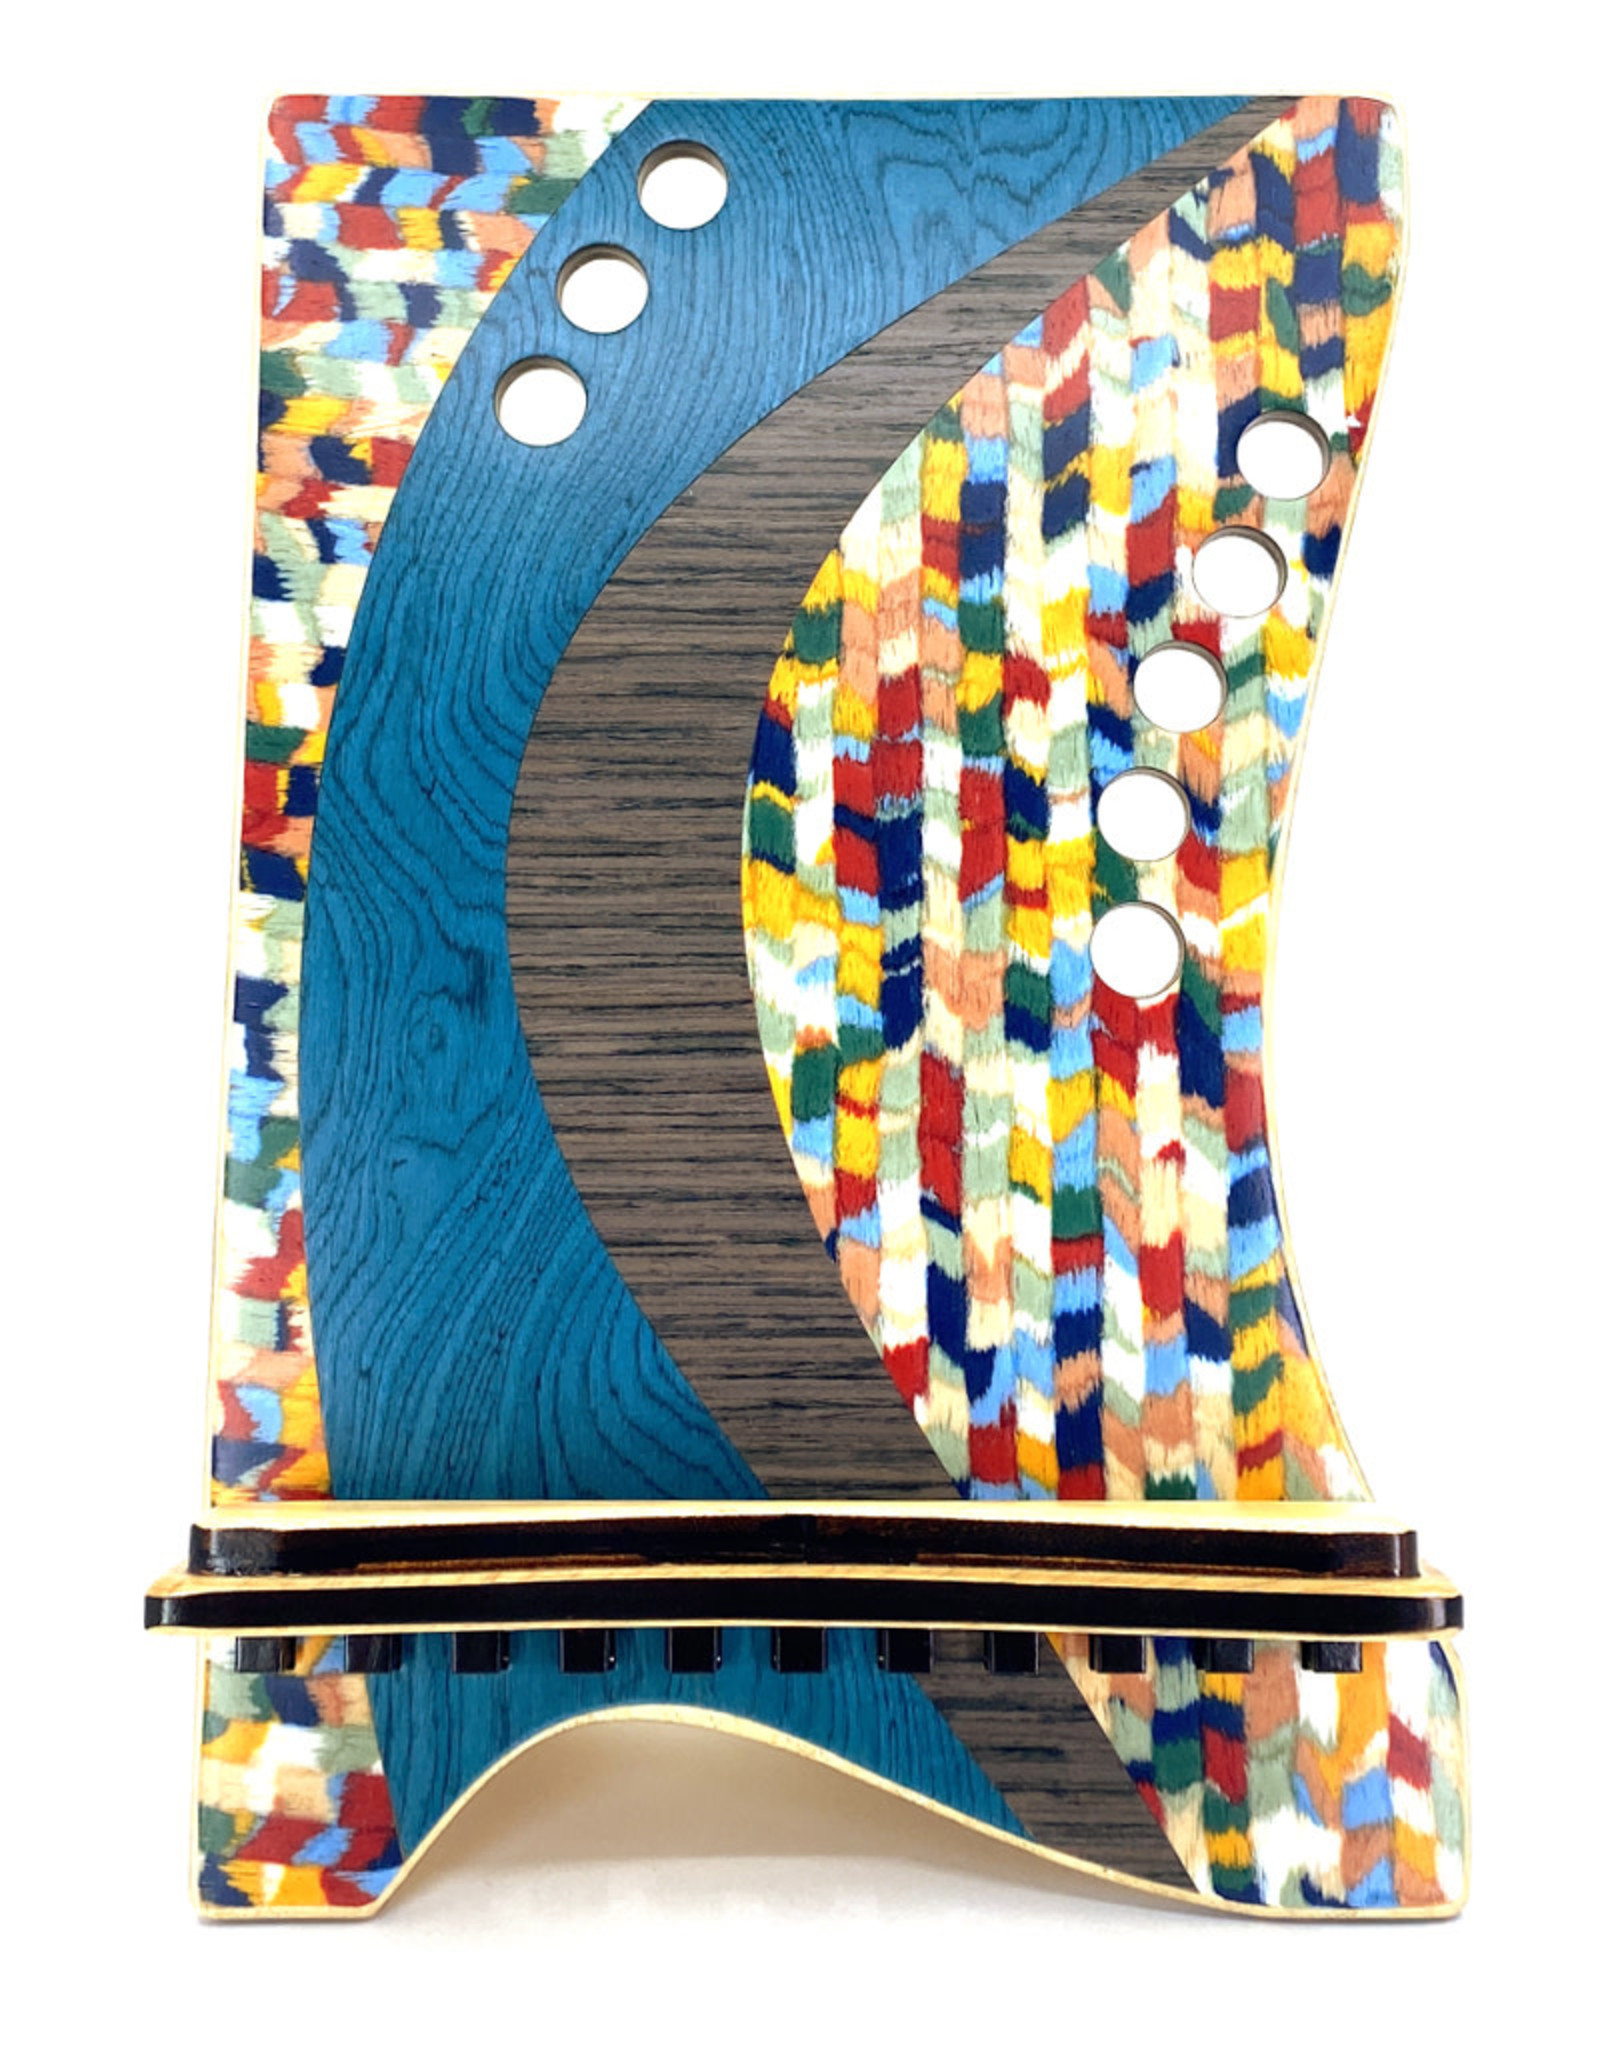 LOST ART WOODWORKS BLUE CONFETTI MARQUETRY INLAID TABLET STAND